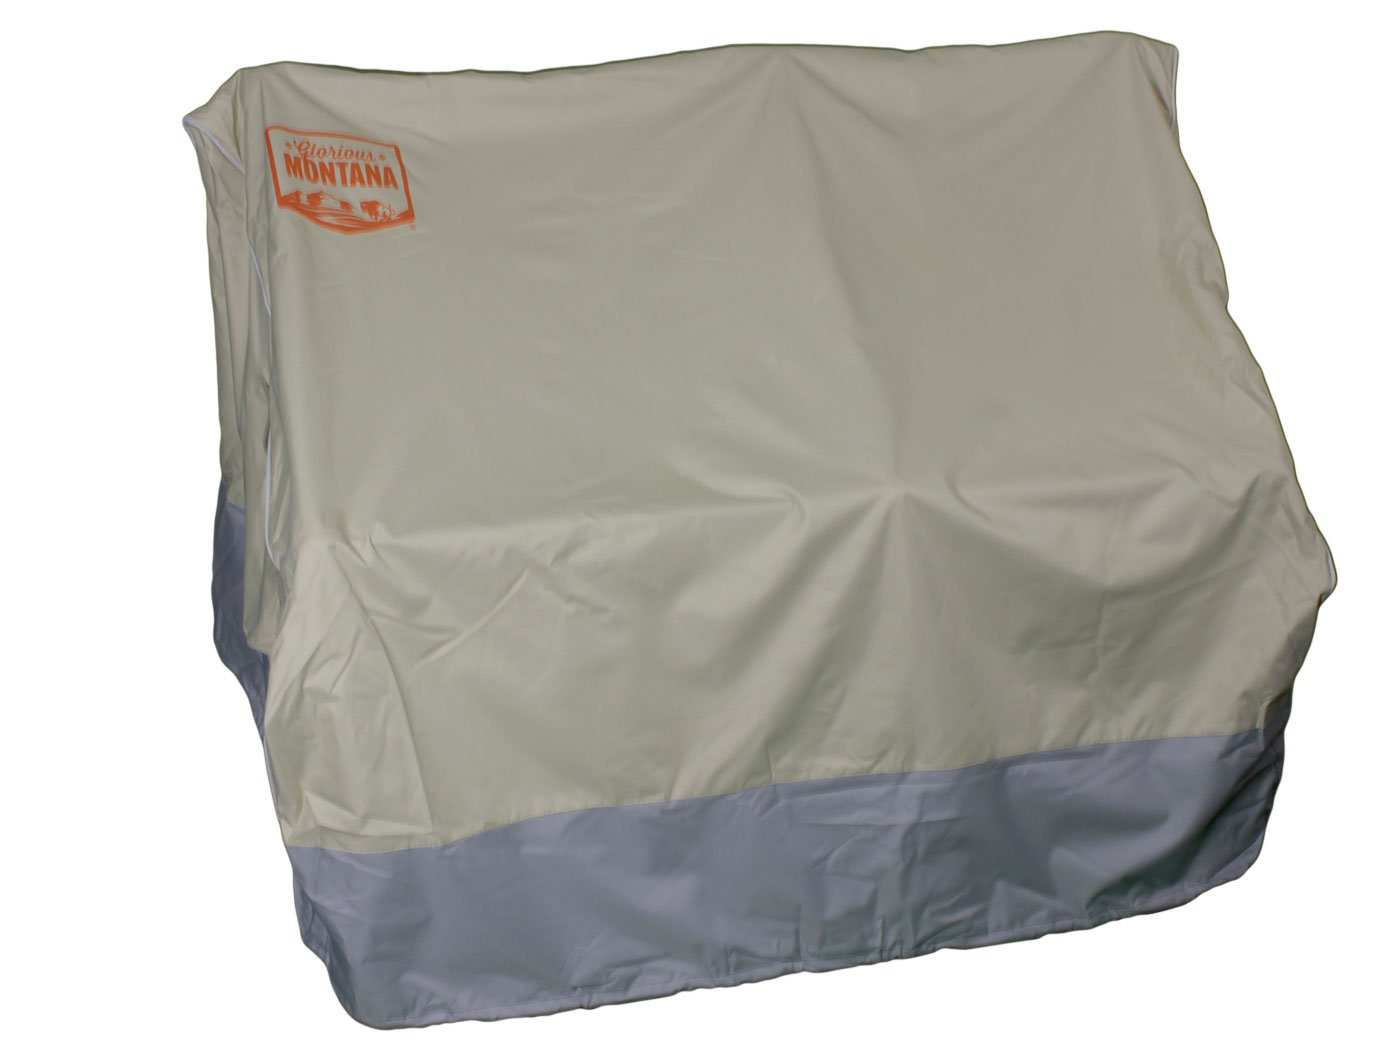 Yukon Glory Original 8258 Premium Patio Bench Cover with Water Resistant Heavy Duty Material